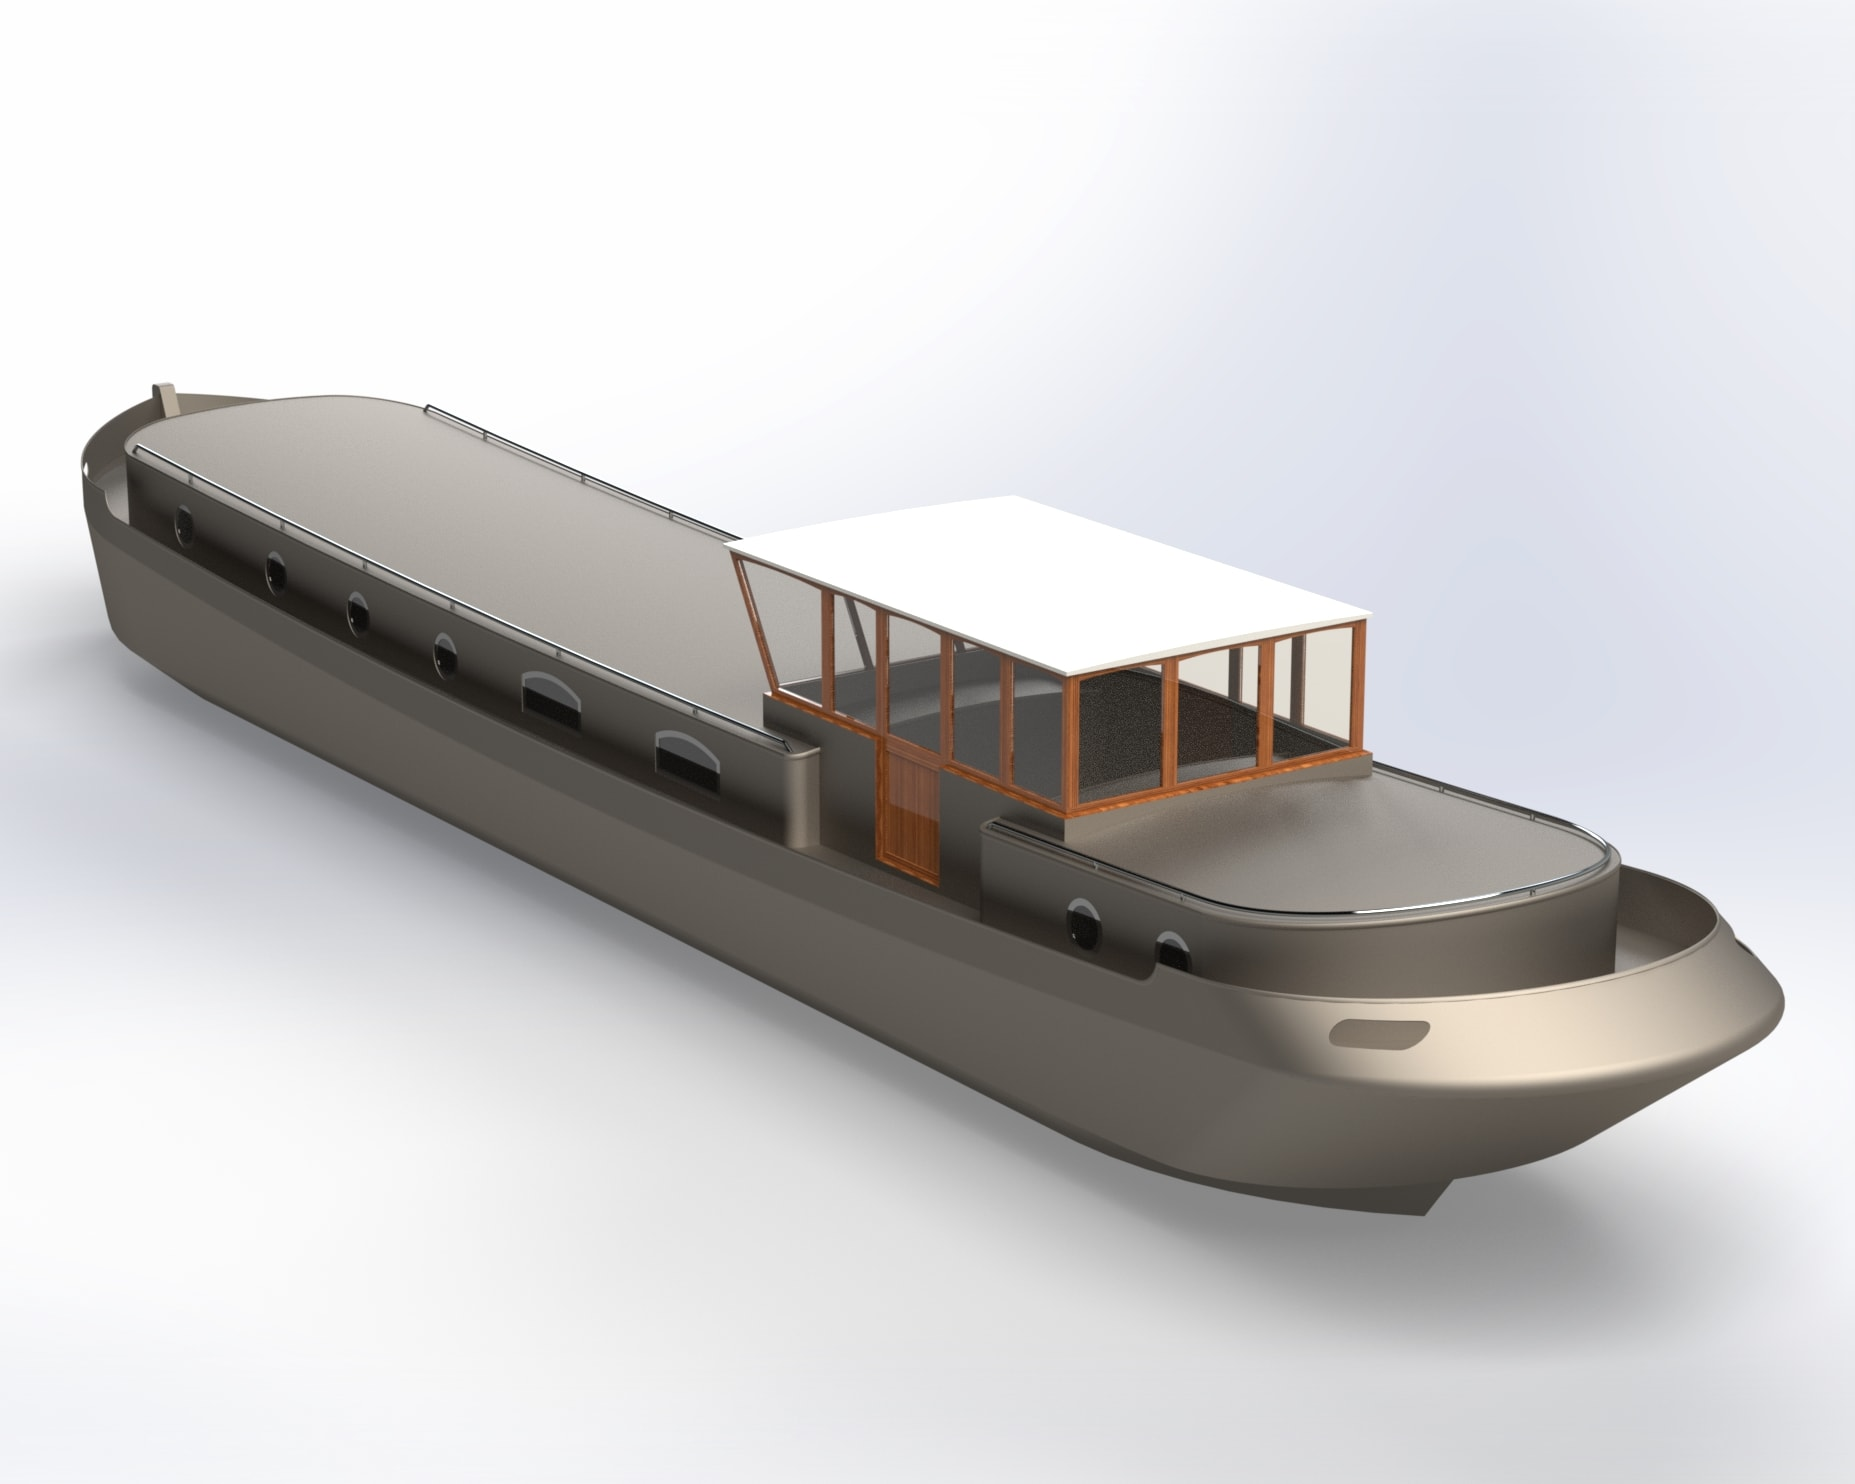 Dutch Barge Rear Iso Metal Finish-min.jpg